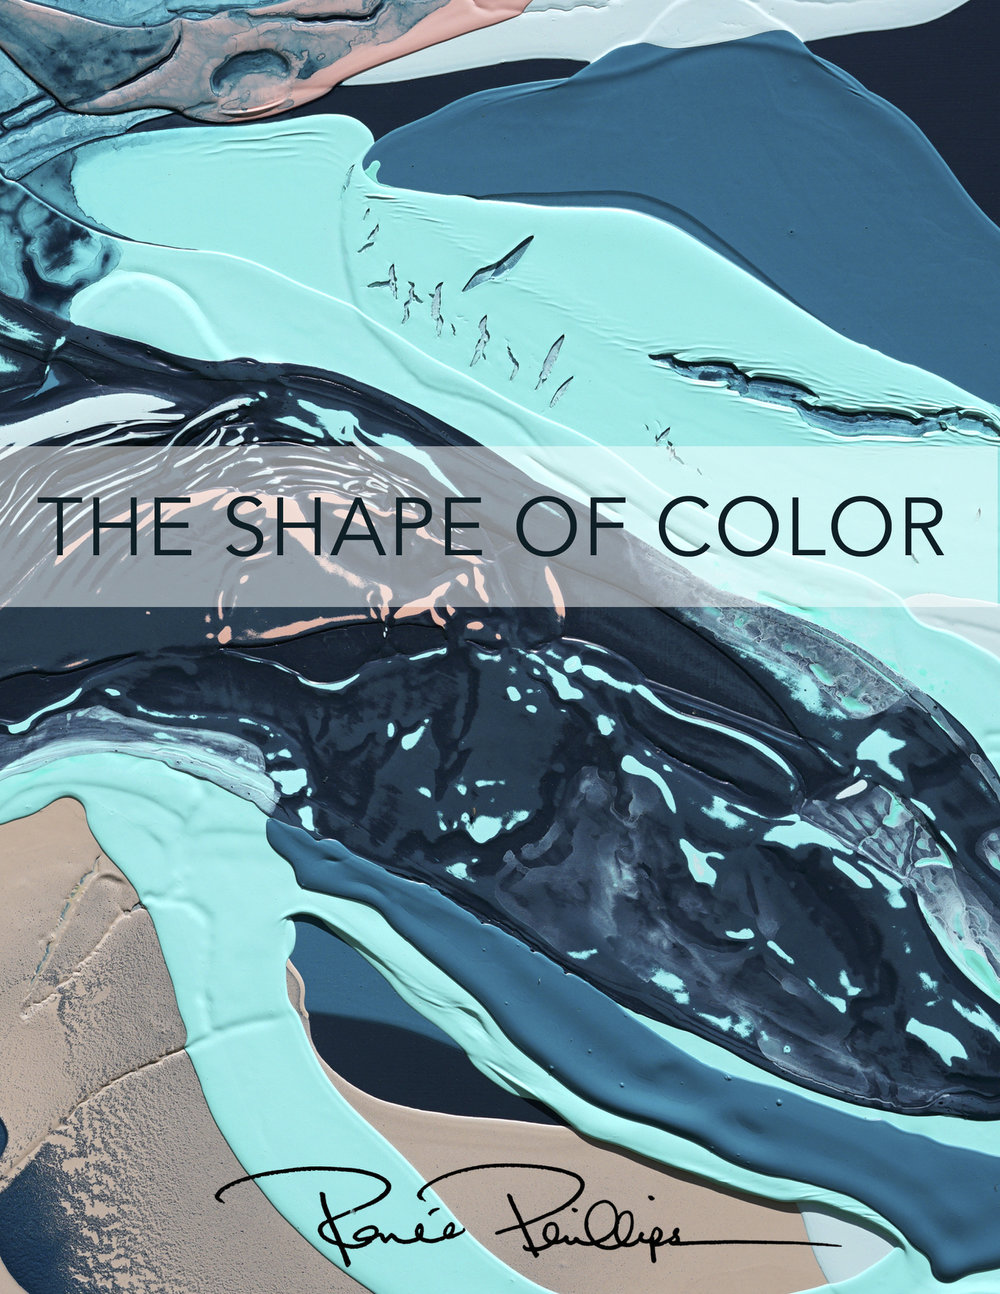 TheShapeofColorTitle copy.jpg